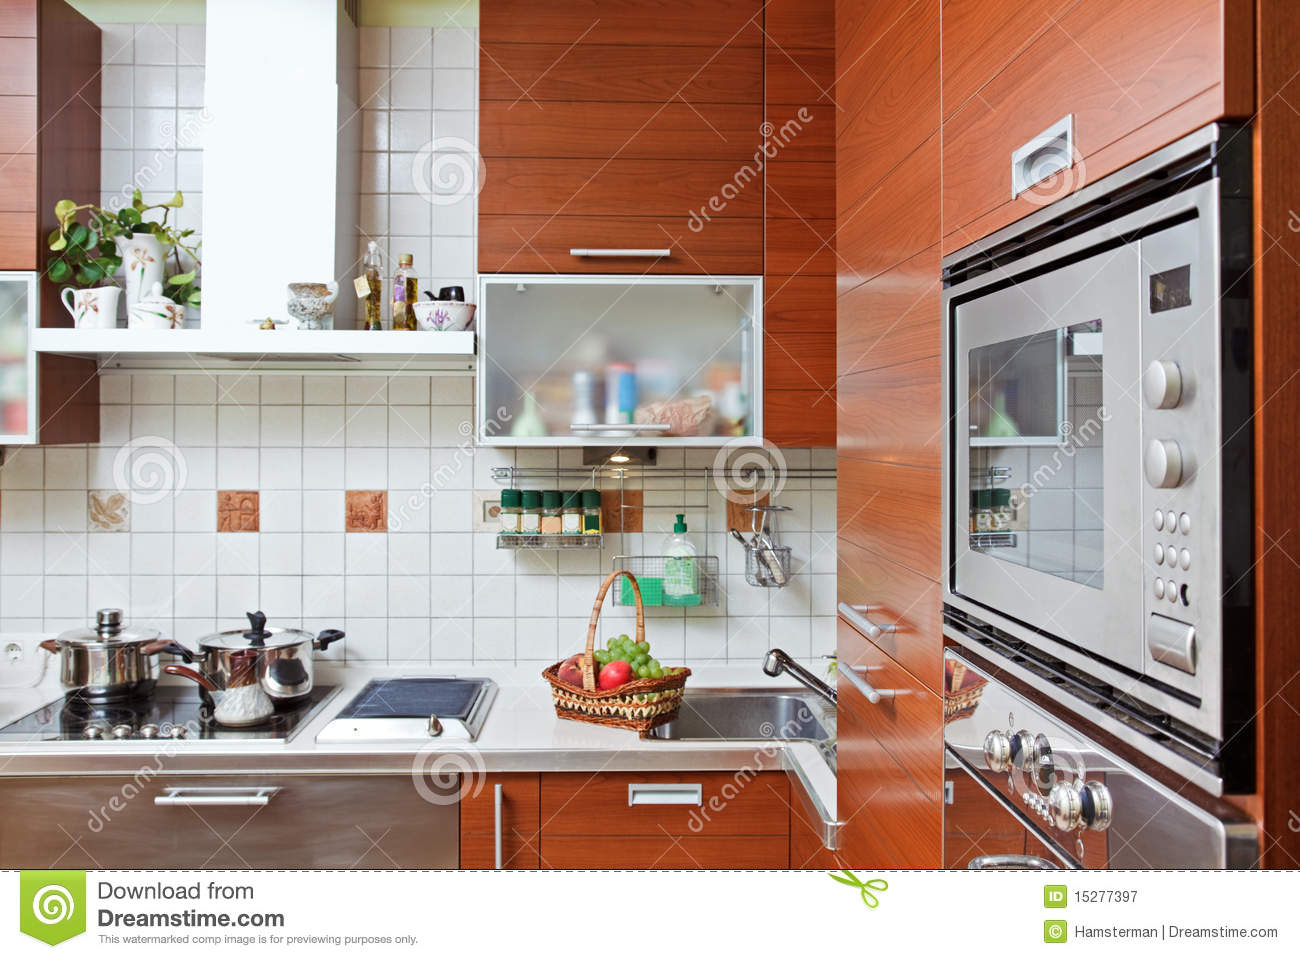 Kitchen Microwave Kitchen Interior With Build In Microwave Oven Royalty Free Stock